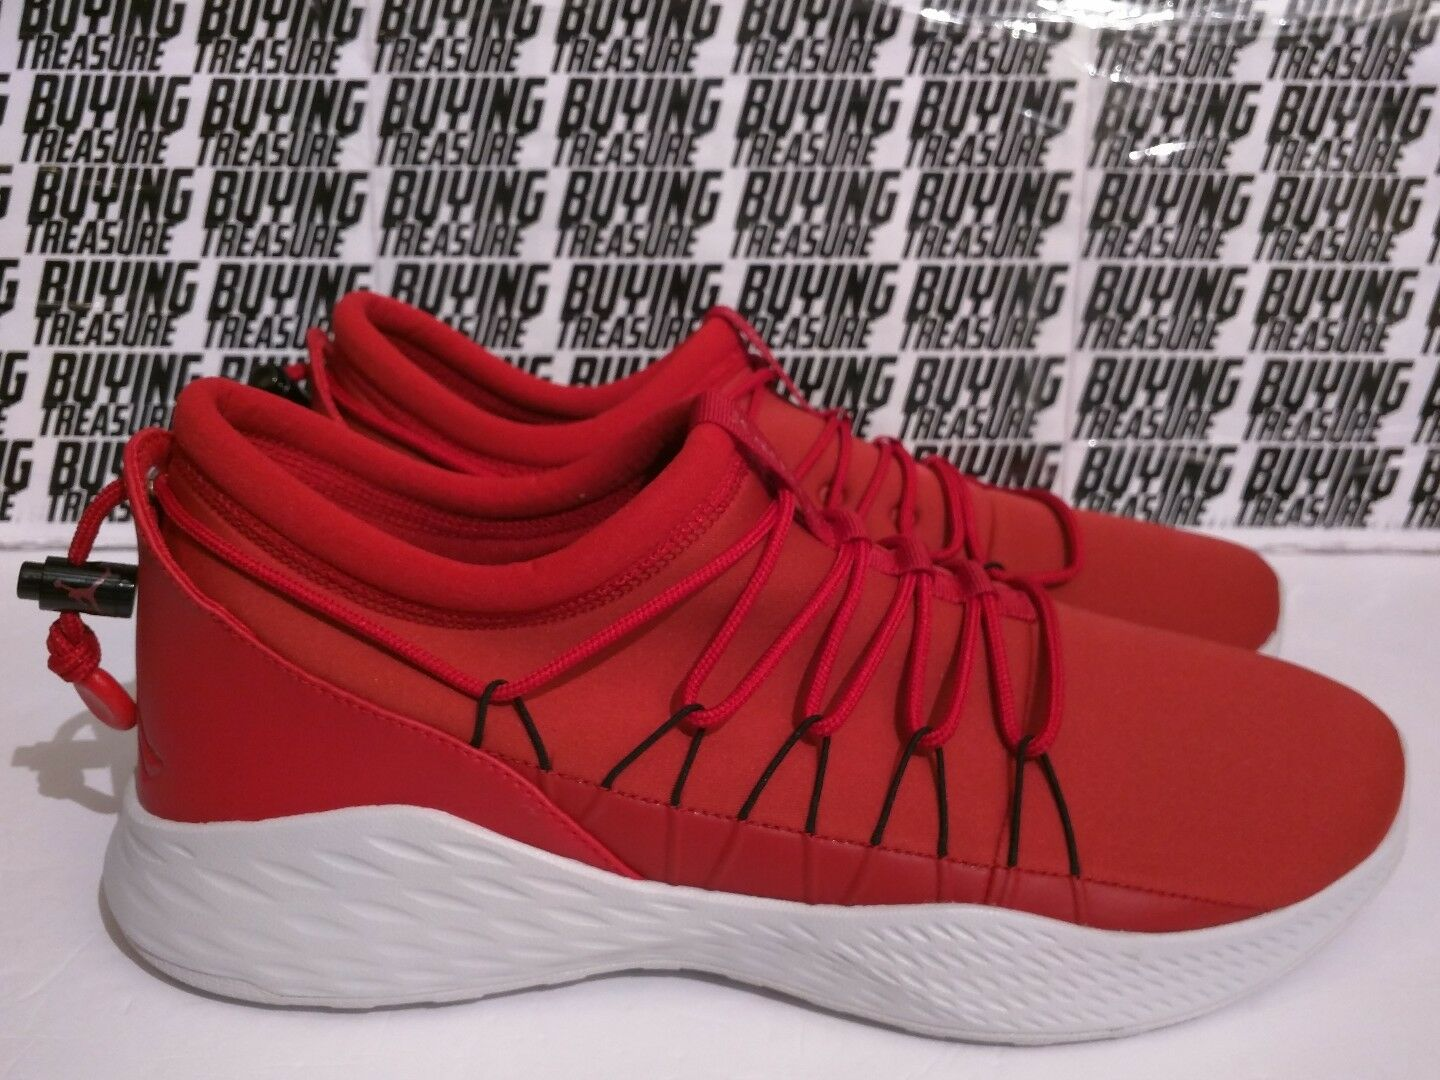 NEW AIR JORDAN FORMULA 23 Red/White-Blk Men's 908859 600 Price reduction The latest discount shoes for men and women